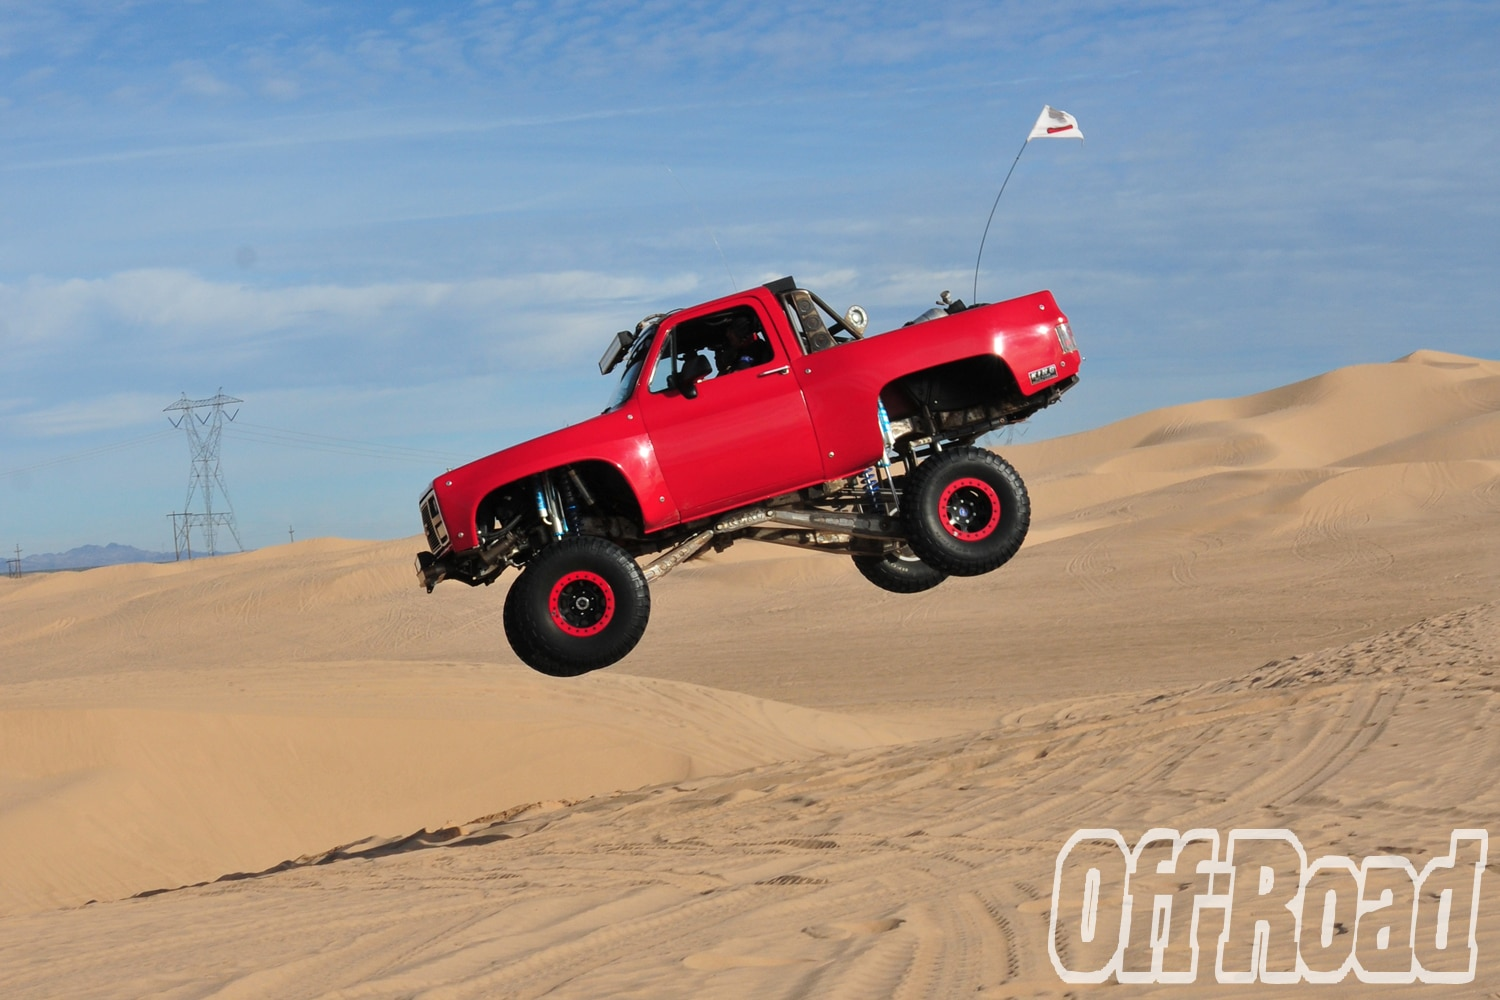 1991 GMC K5 Jimmy Glamis Off Road Magazine Cover Shoot 6